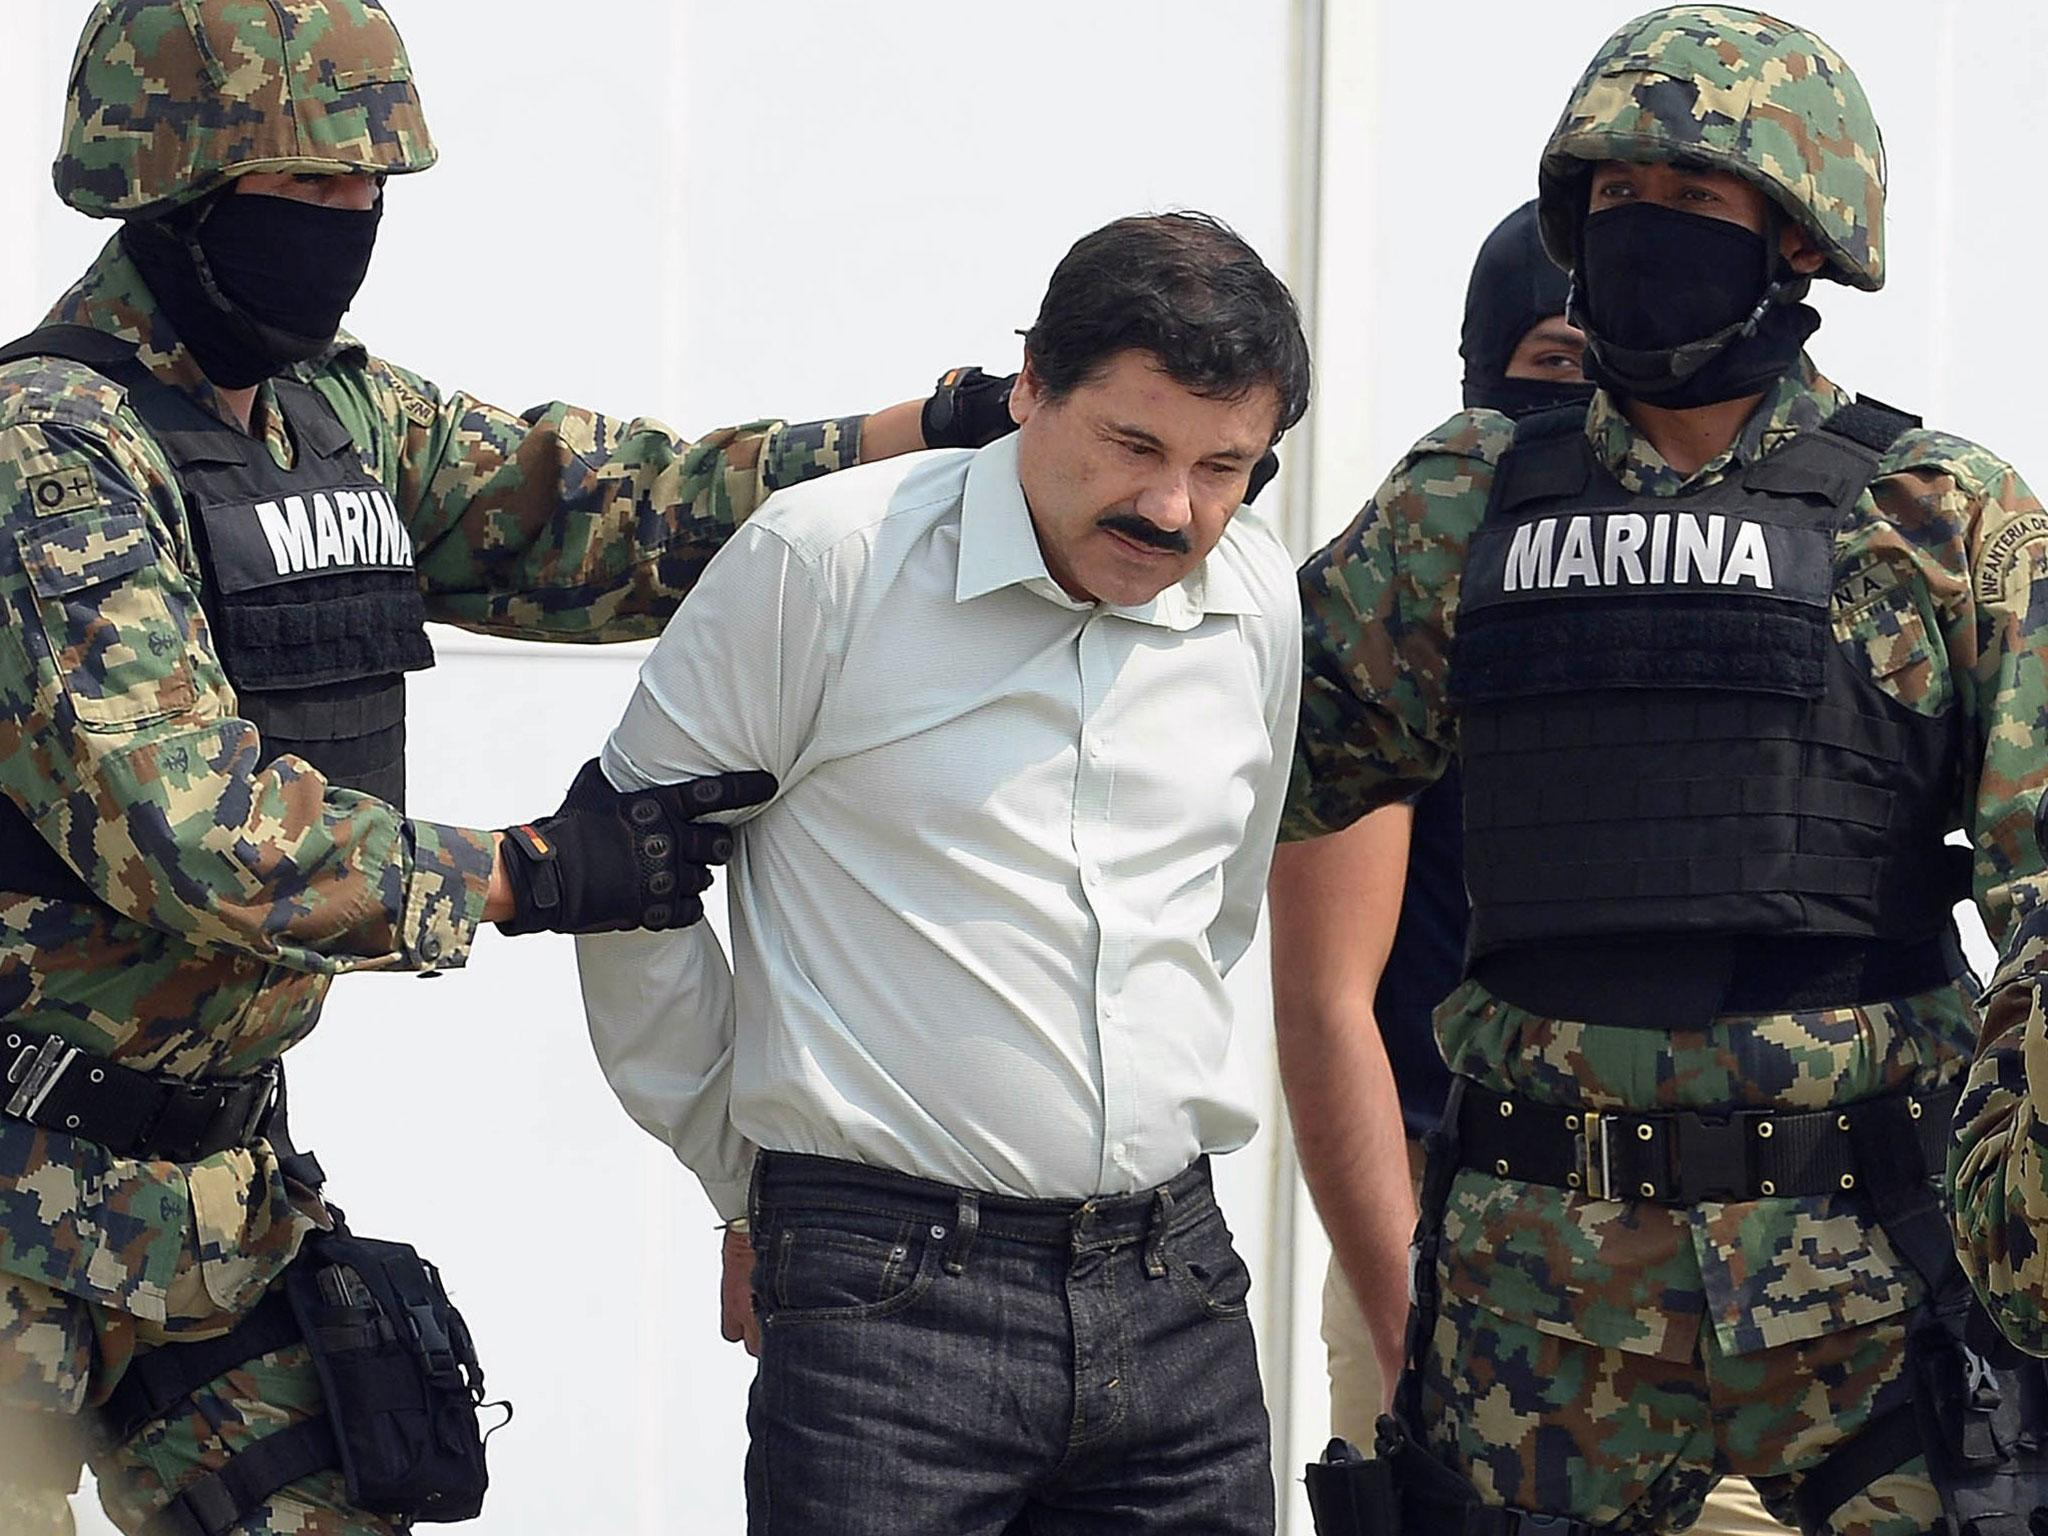 El Chapo trial: Drug lord raped girls as young as 13 and called them his 'vitamins', court documents say